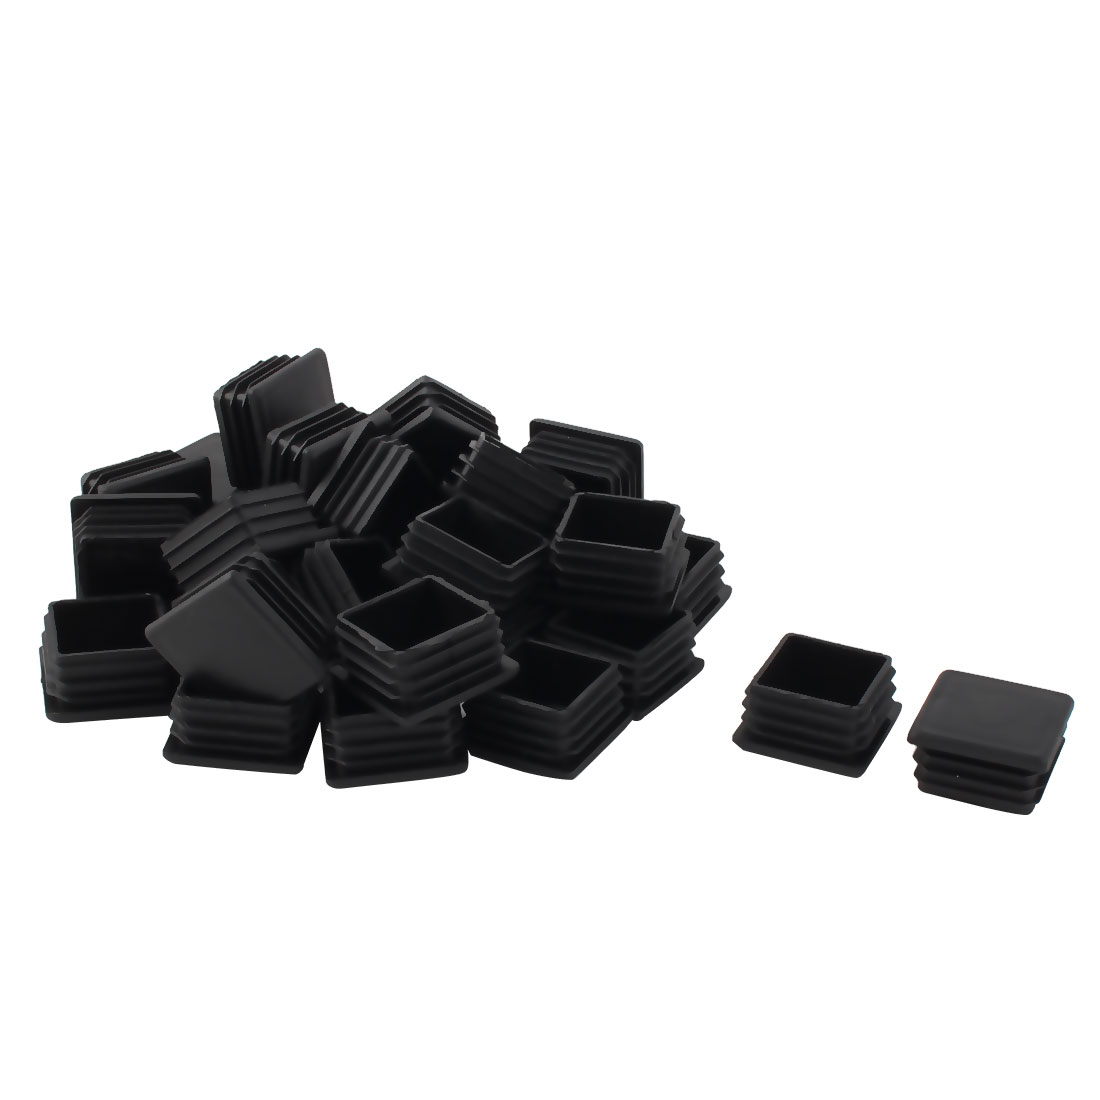 Furniture Chair Table Plastic Square Tube Insert End Cap Black 35mm x 35mm 30pcs